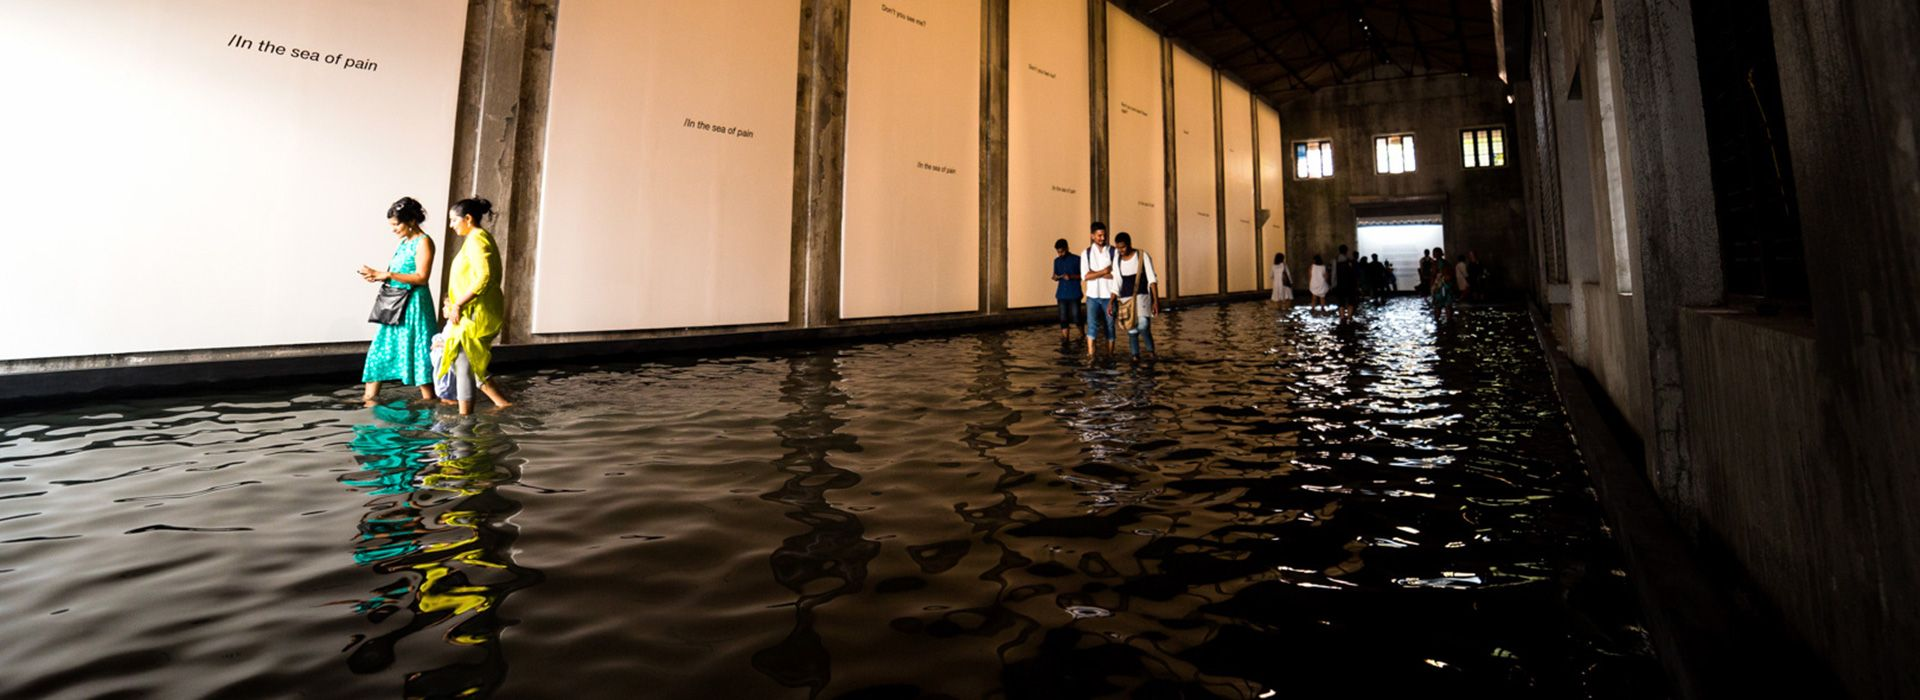 Raúl Zurita, Sea of Pain, 2016. Foto: The Kochi Biennale Foundation. Courtesía del artista. Con el apoyo de Radhika Chopra y Rajan Anandan.